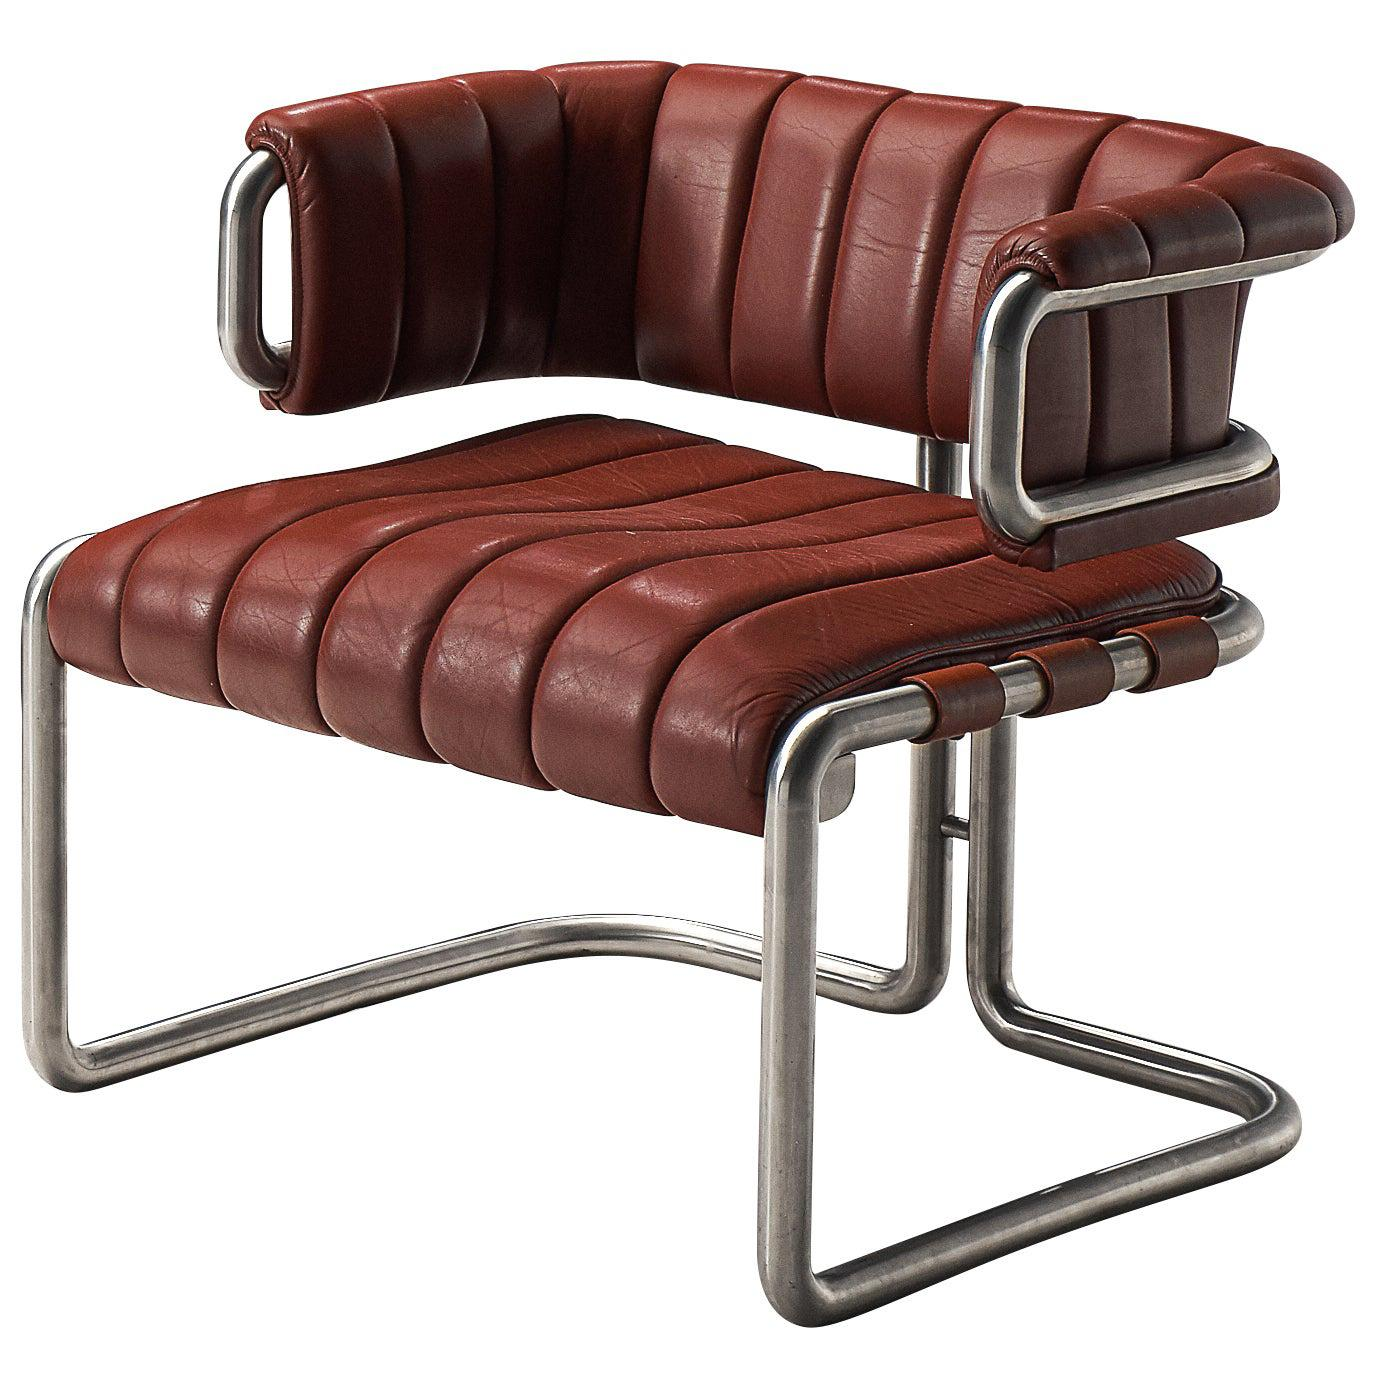 Cubist Lounge Chairs in Red Leather and Tubular Steel